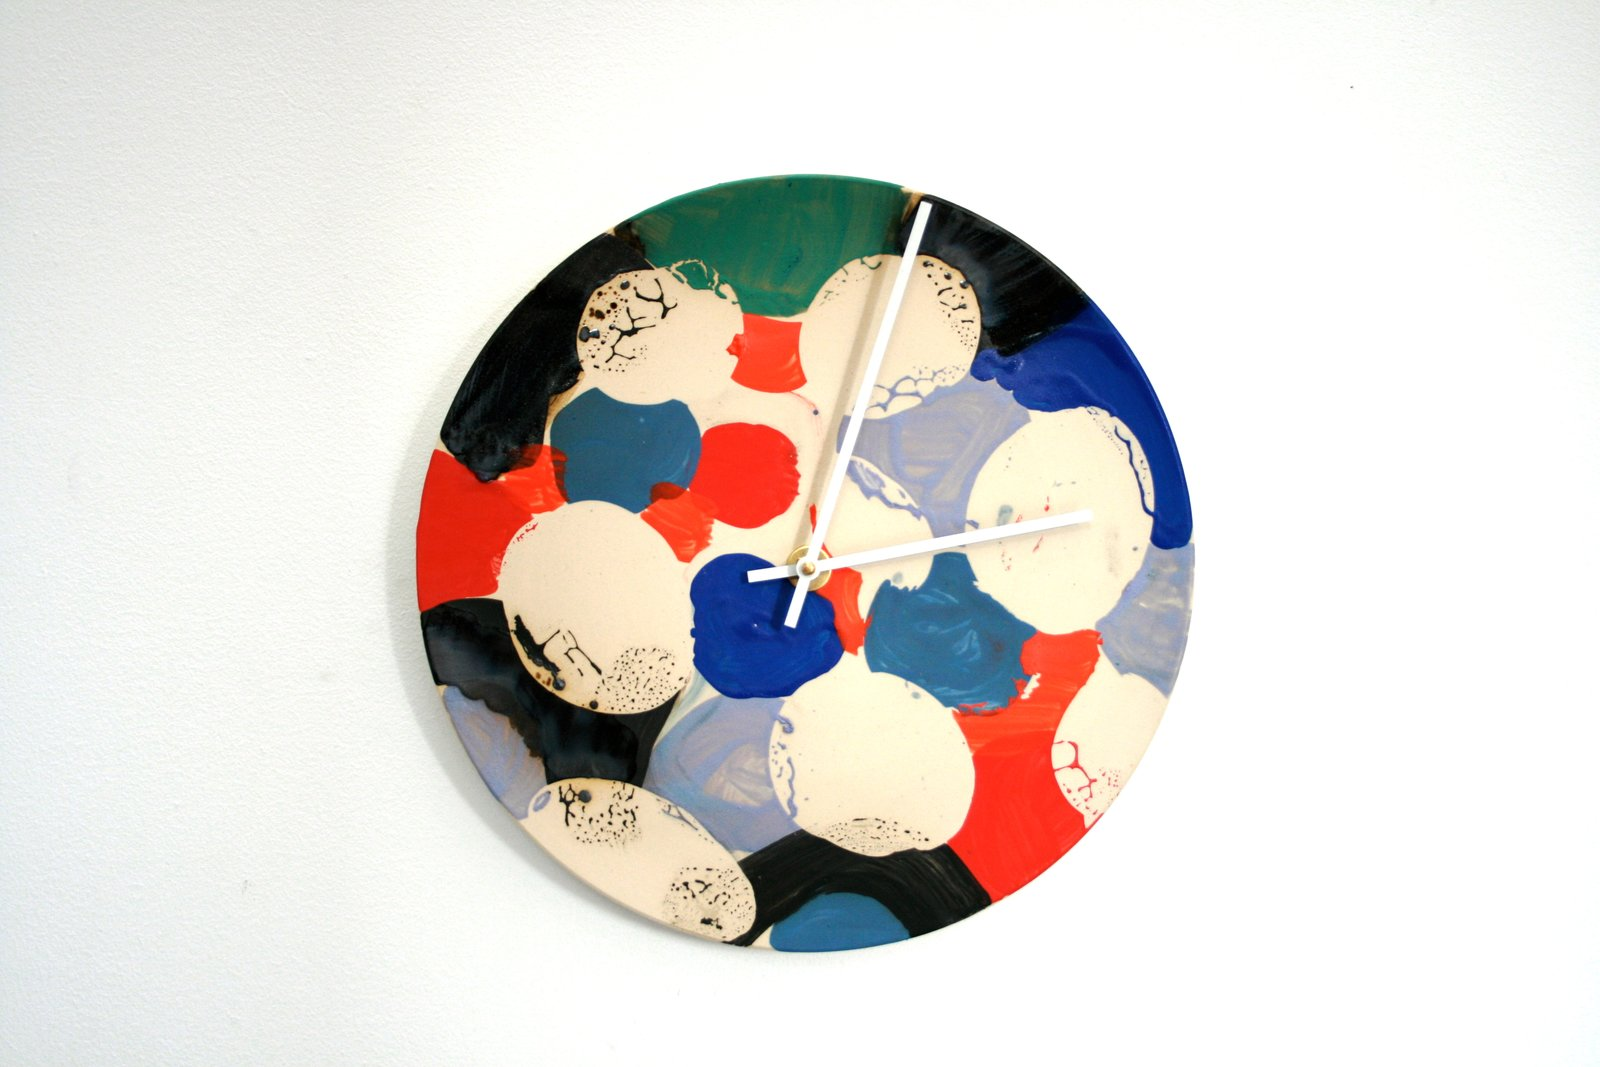 Clock by Roger Herman, $850. Photo by Heath Ceramics.  Hand-thrown and Glazed from Heath Ceramics Presents Design in Time